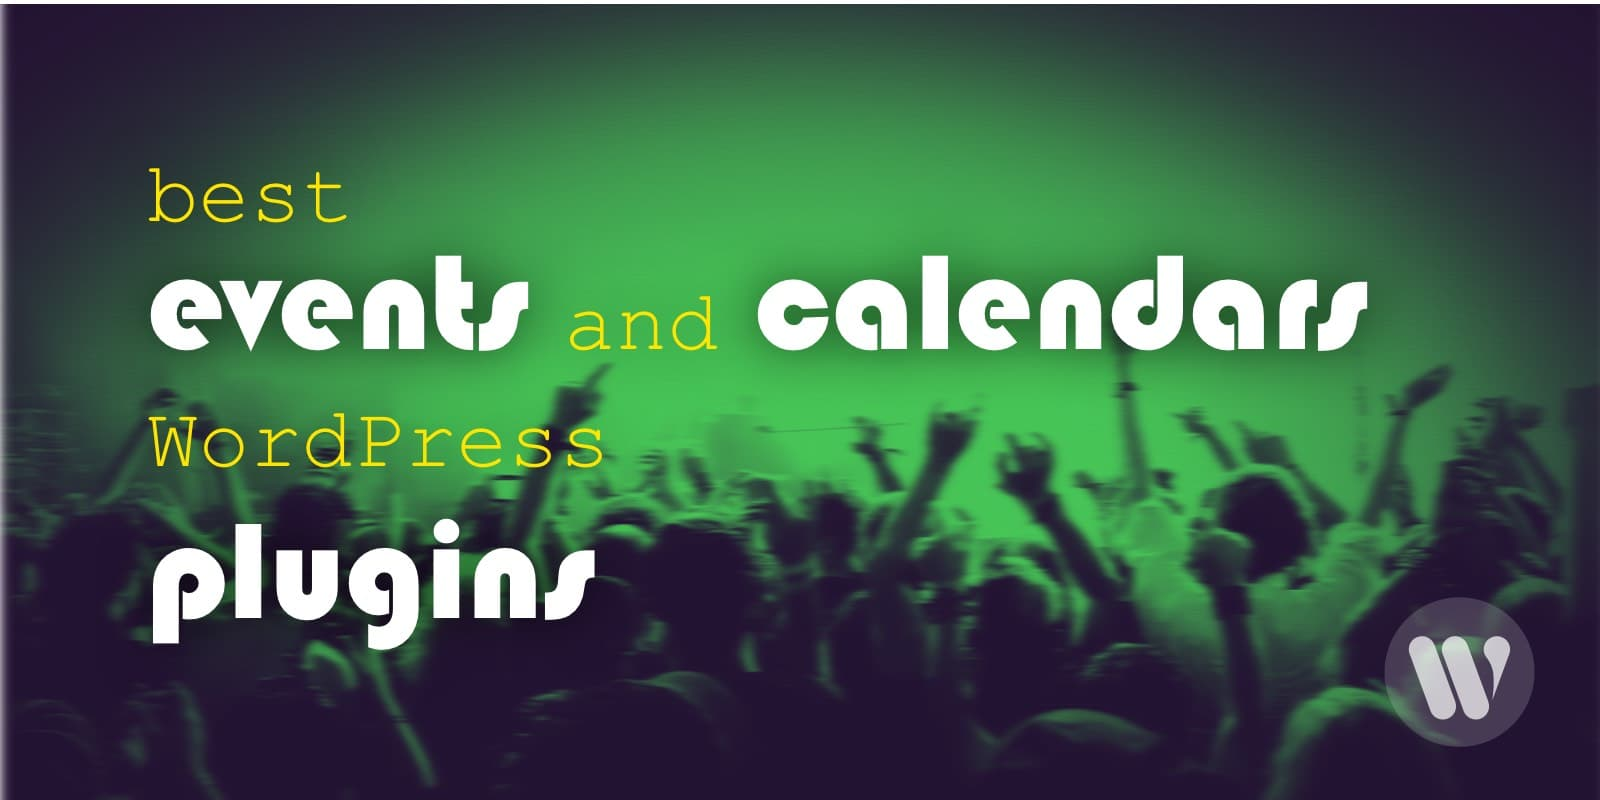 events-calendars-plugins.jpg